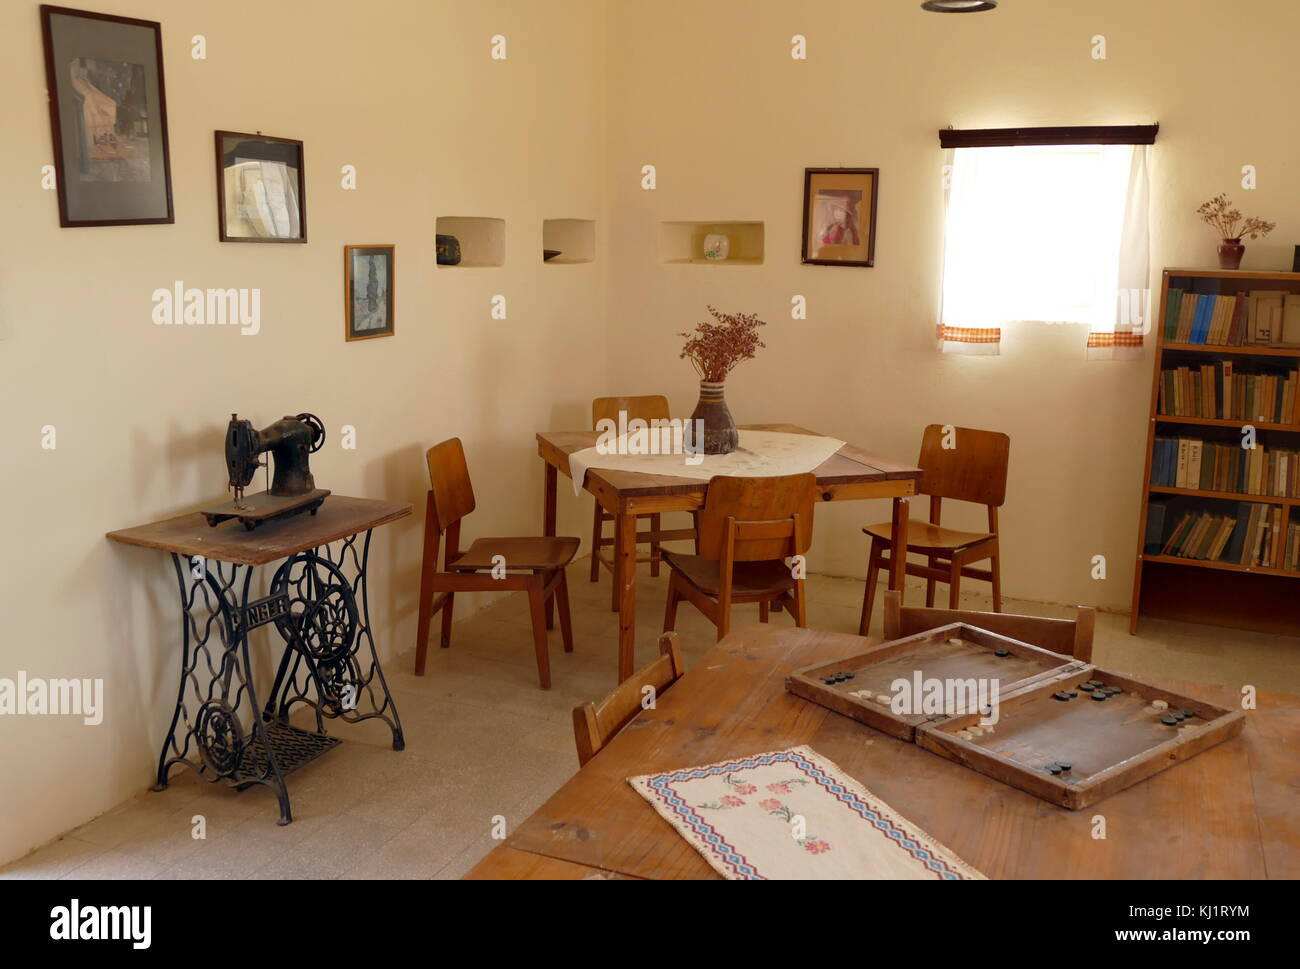 Restored room at kibbutz Revivim, in the Negev desert in southern Israel. The community was formed in 1943 and during - Stock Image